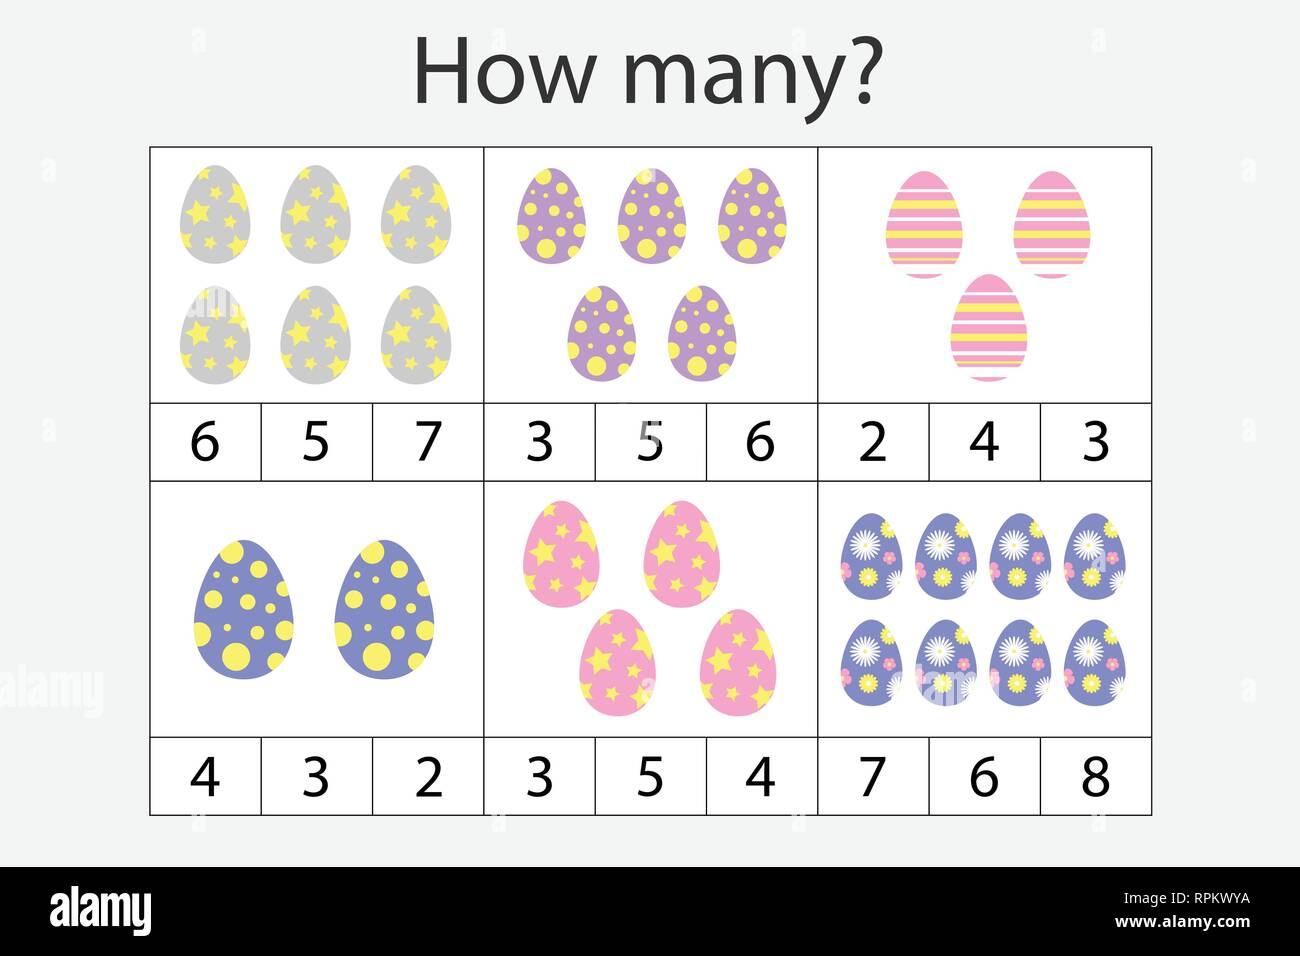 How Many Counting Game With Easter Eggs For Kids